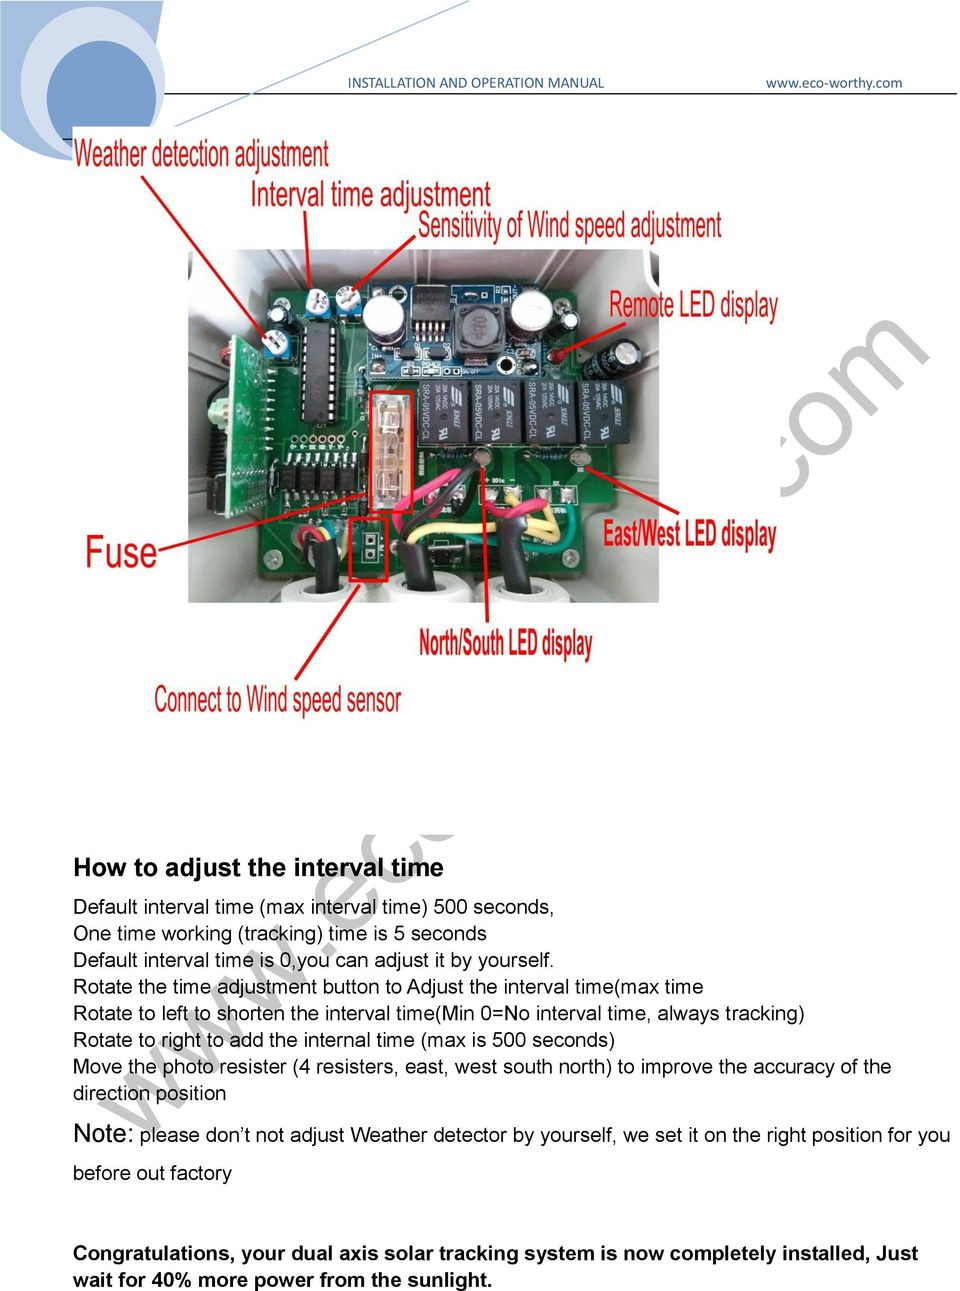 Installation And Operation Manual Pdf Led Solar Tracker Circuit Diagram Time Max Is 500 Seconds Move The Photo Resister 4 Resisters East